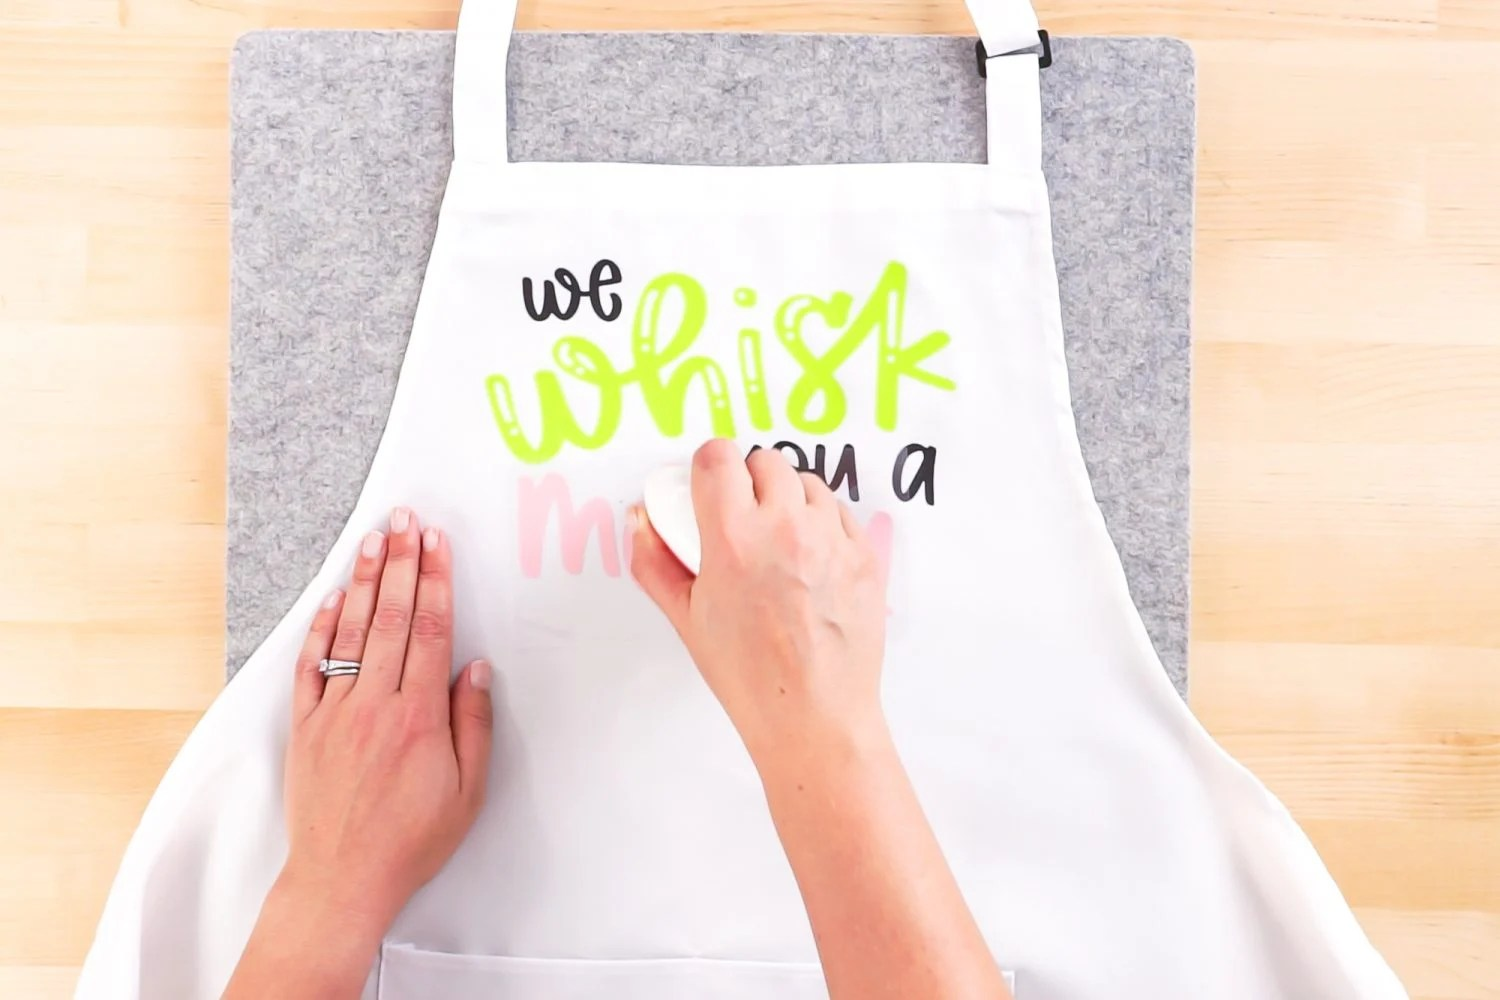 Iron the other layers onto your apron using the EasyPress Mini.